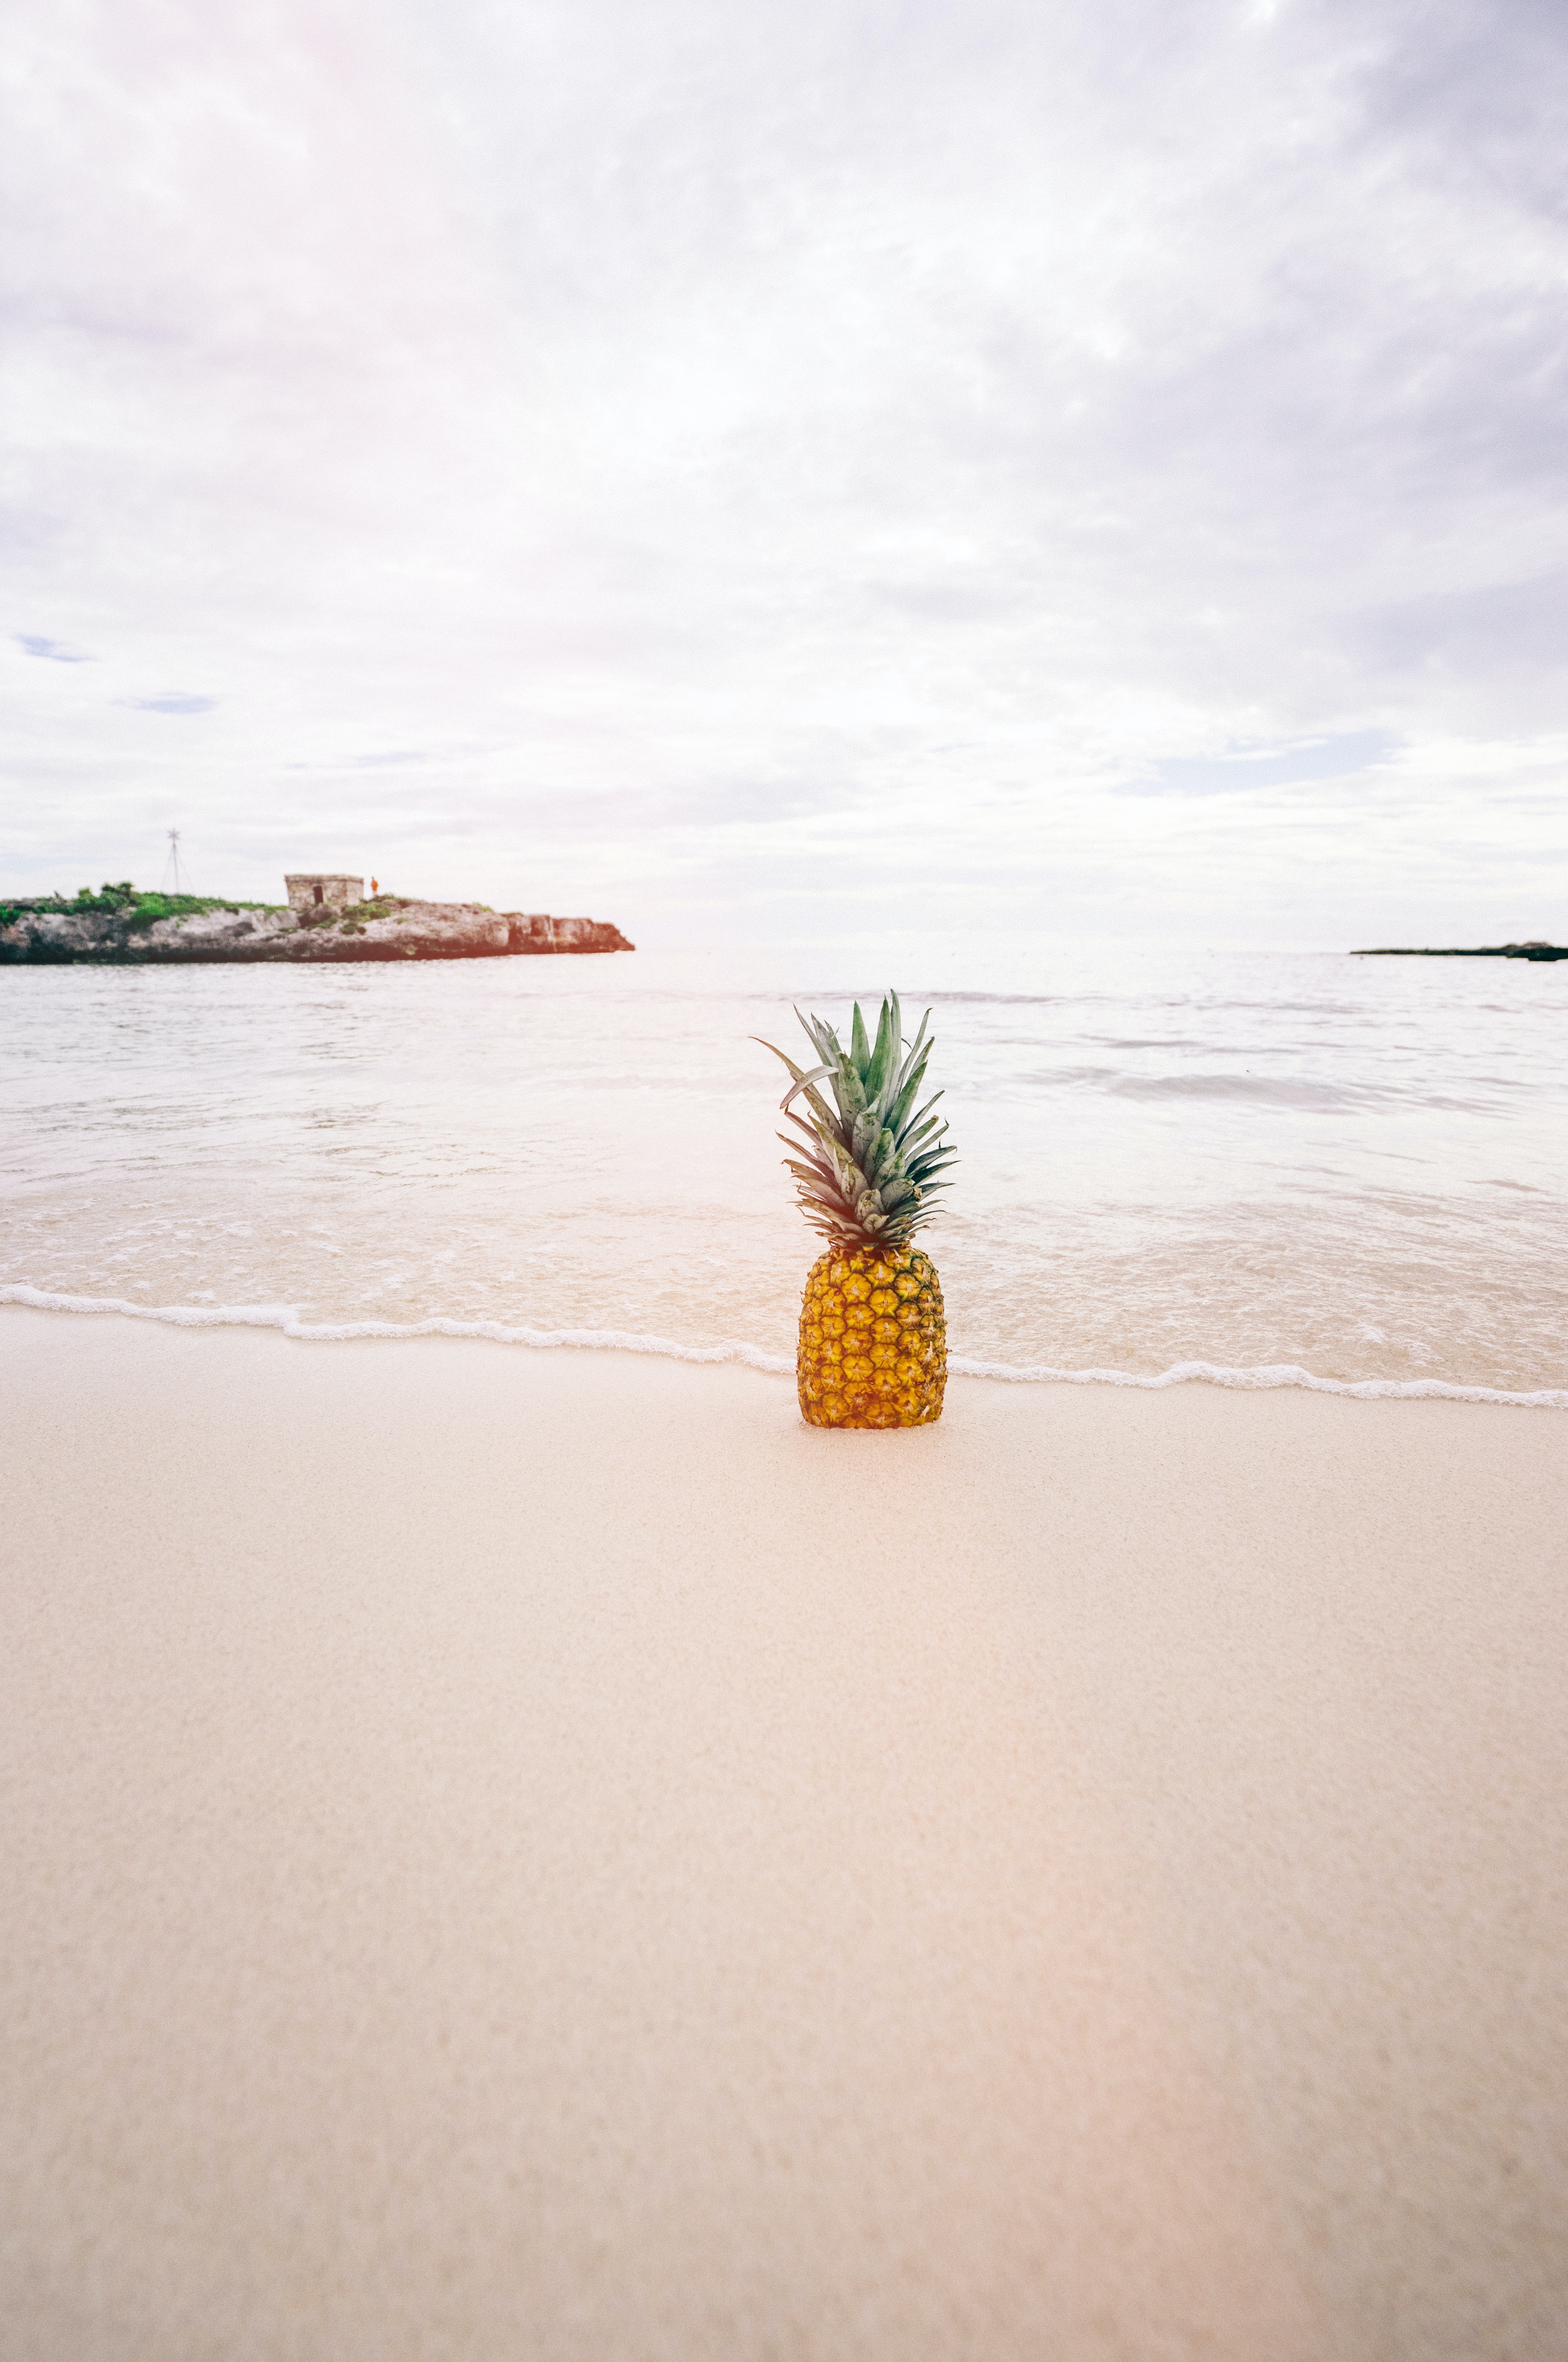 A pineapple in the sand overlooking the ocean.